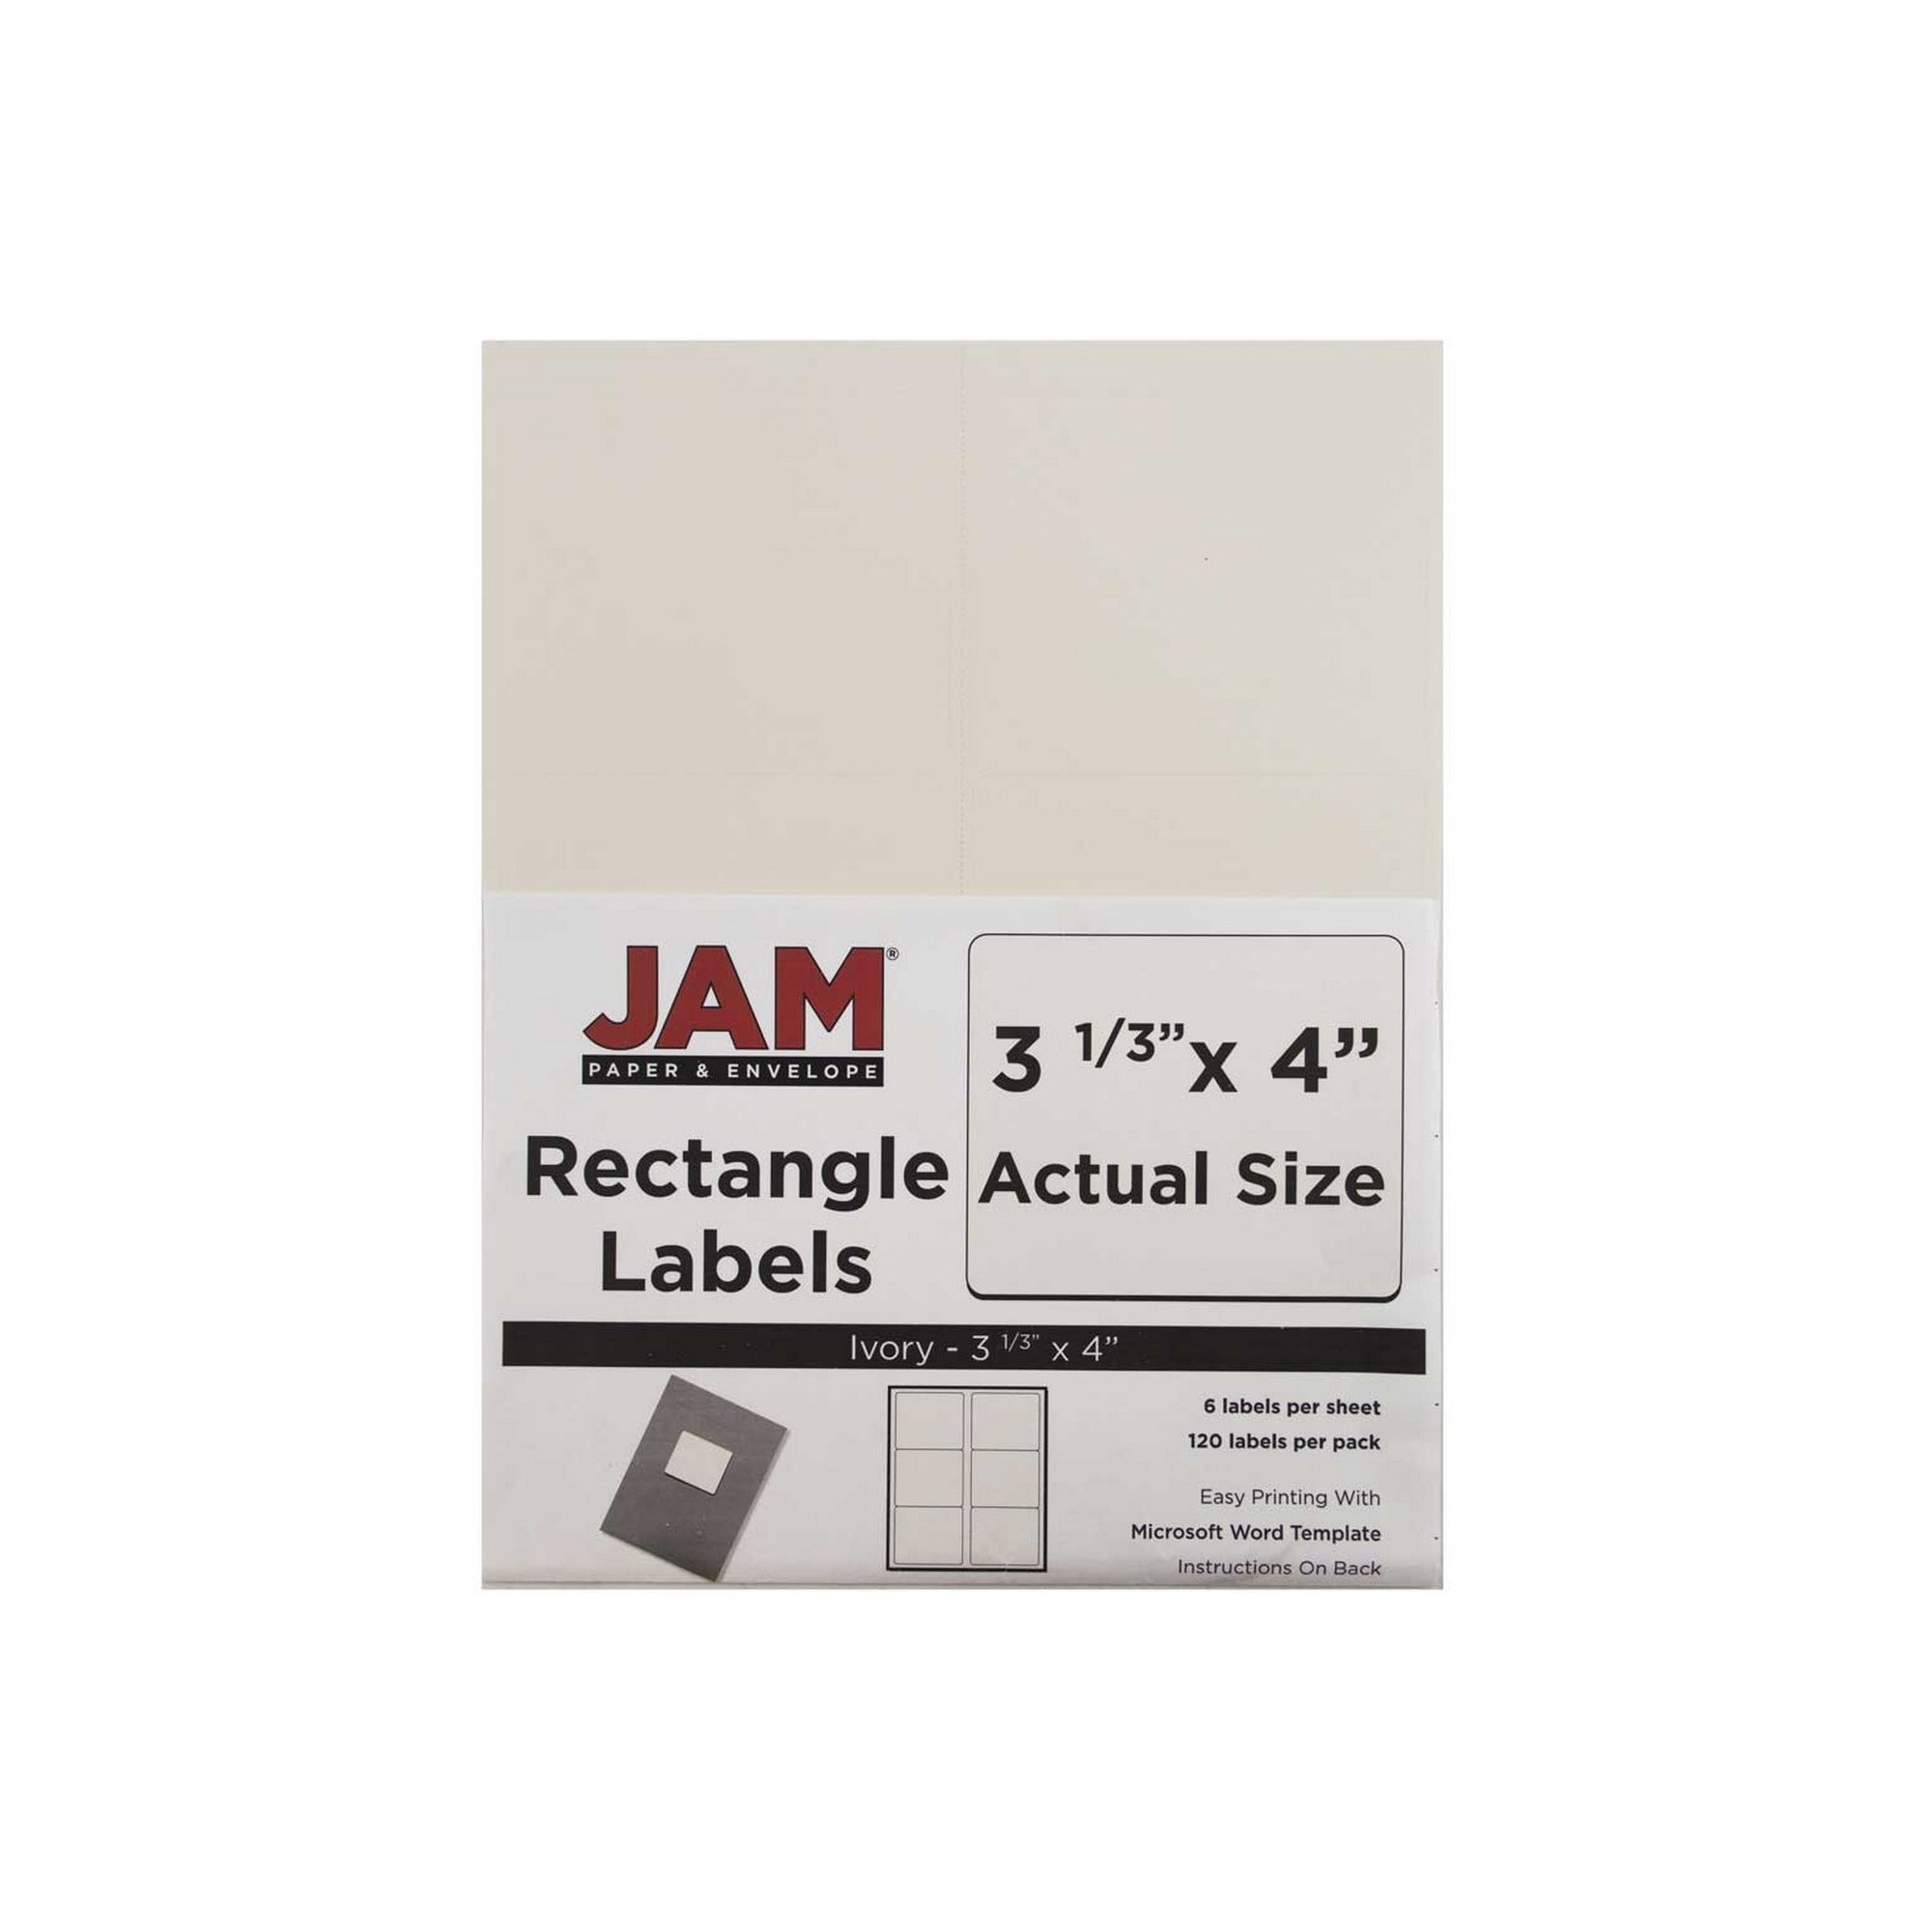 It is a picture of Vibrant Ivory Colored Mailing Labels